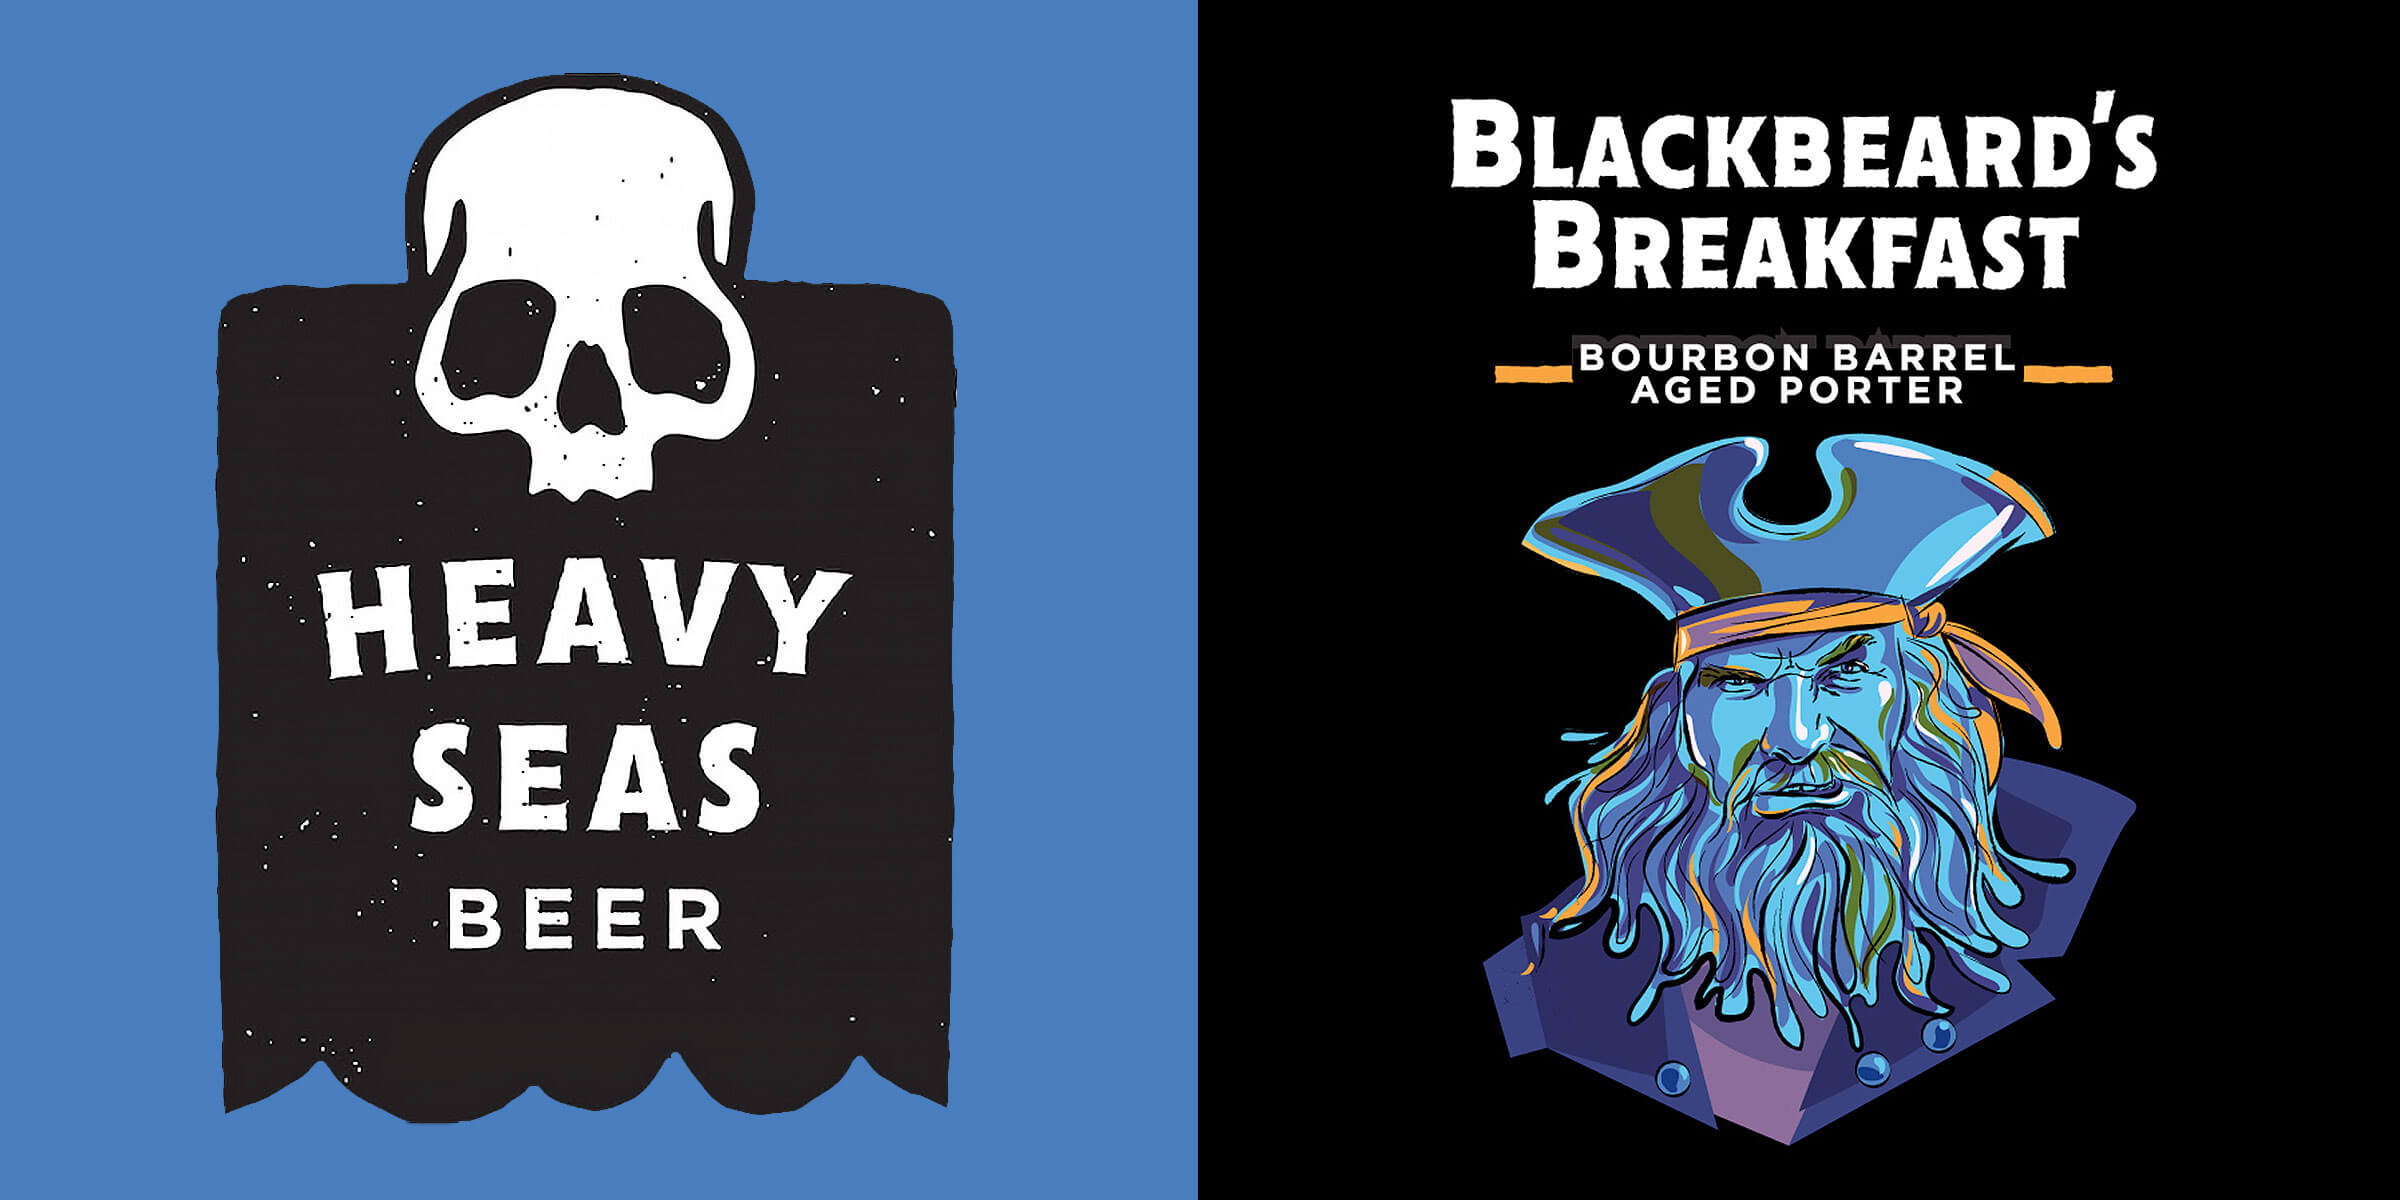 Heavy Seas Beer will soon release Blackbeard's Breakfast, an Imperial Coffee Porter aged in bourbon barrels along with a non-barrel-aged Tiramisu variant.